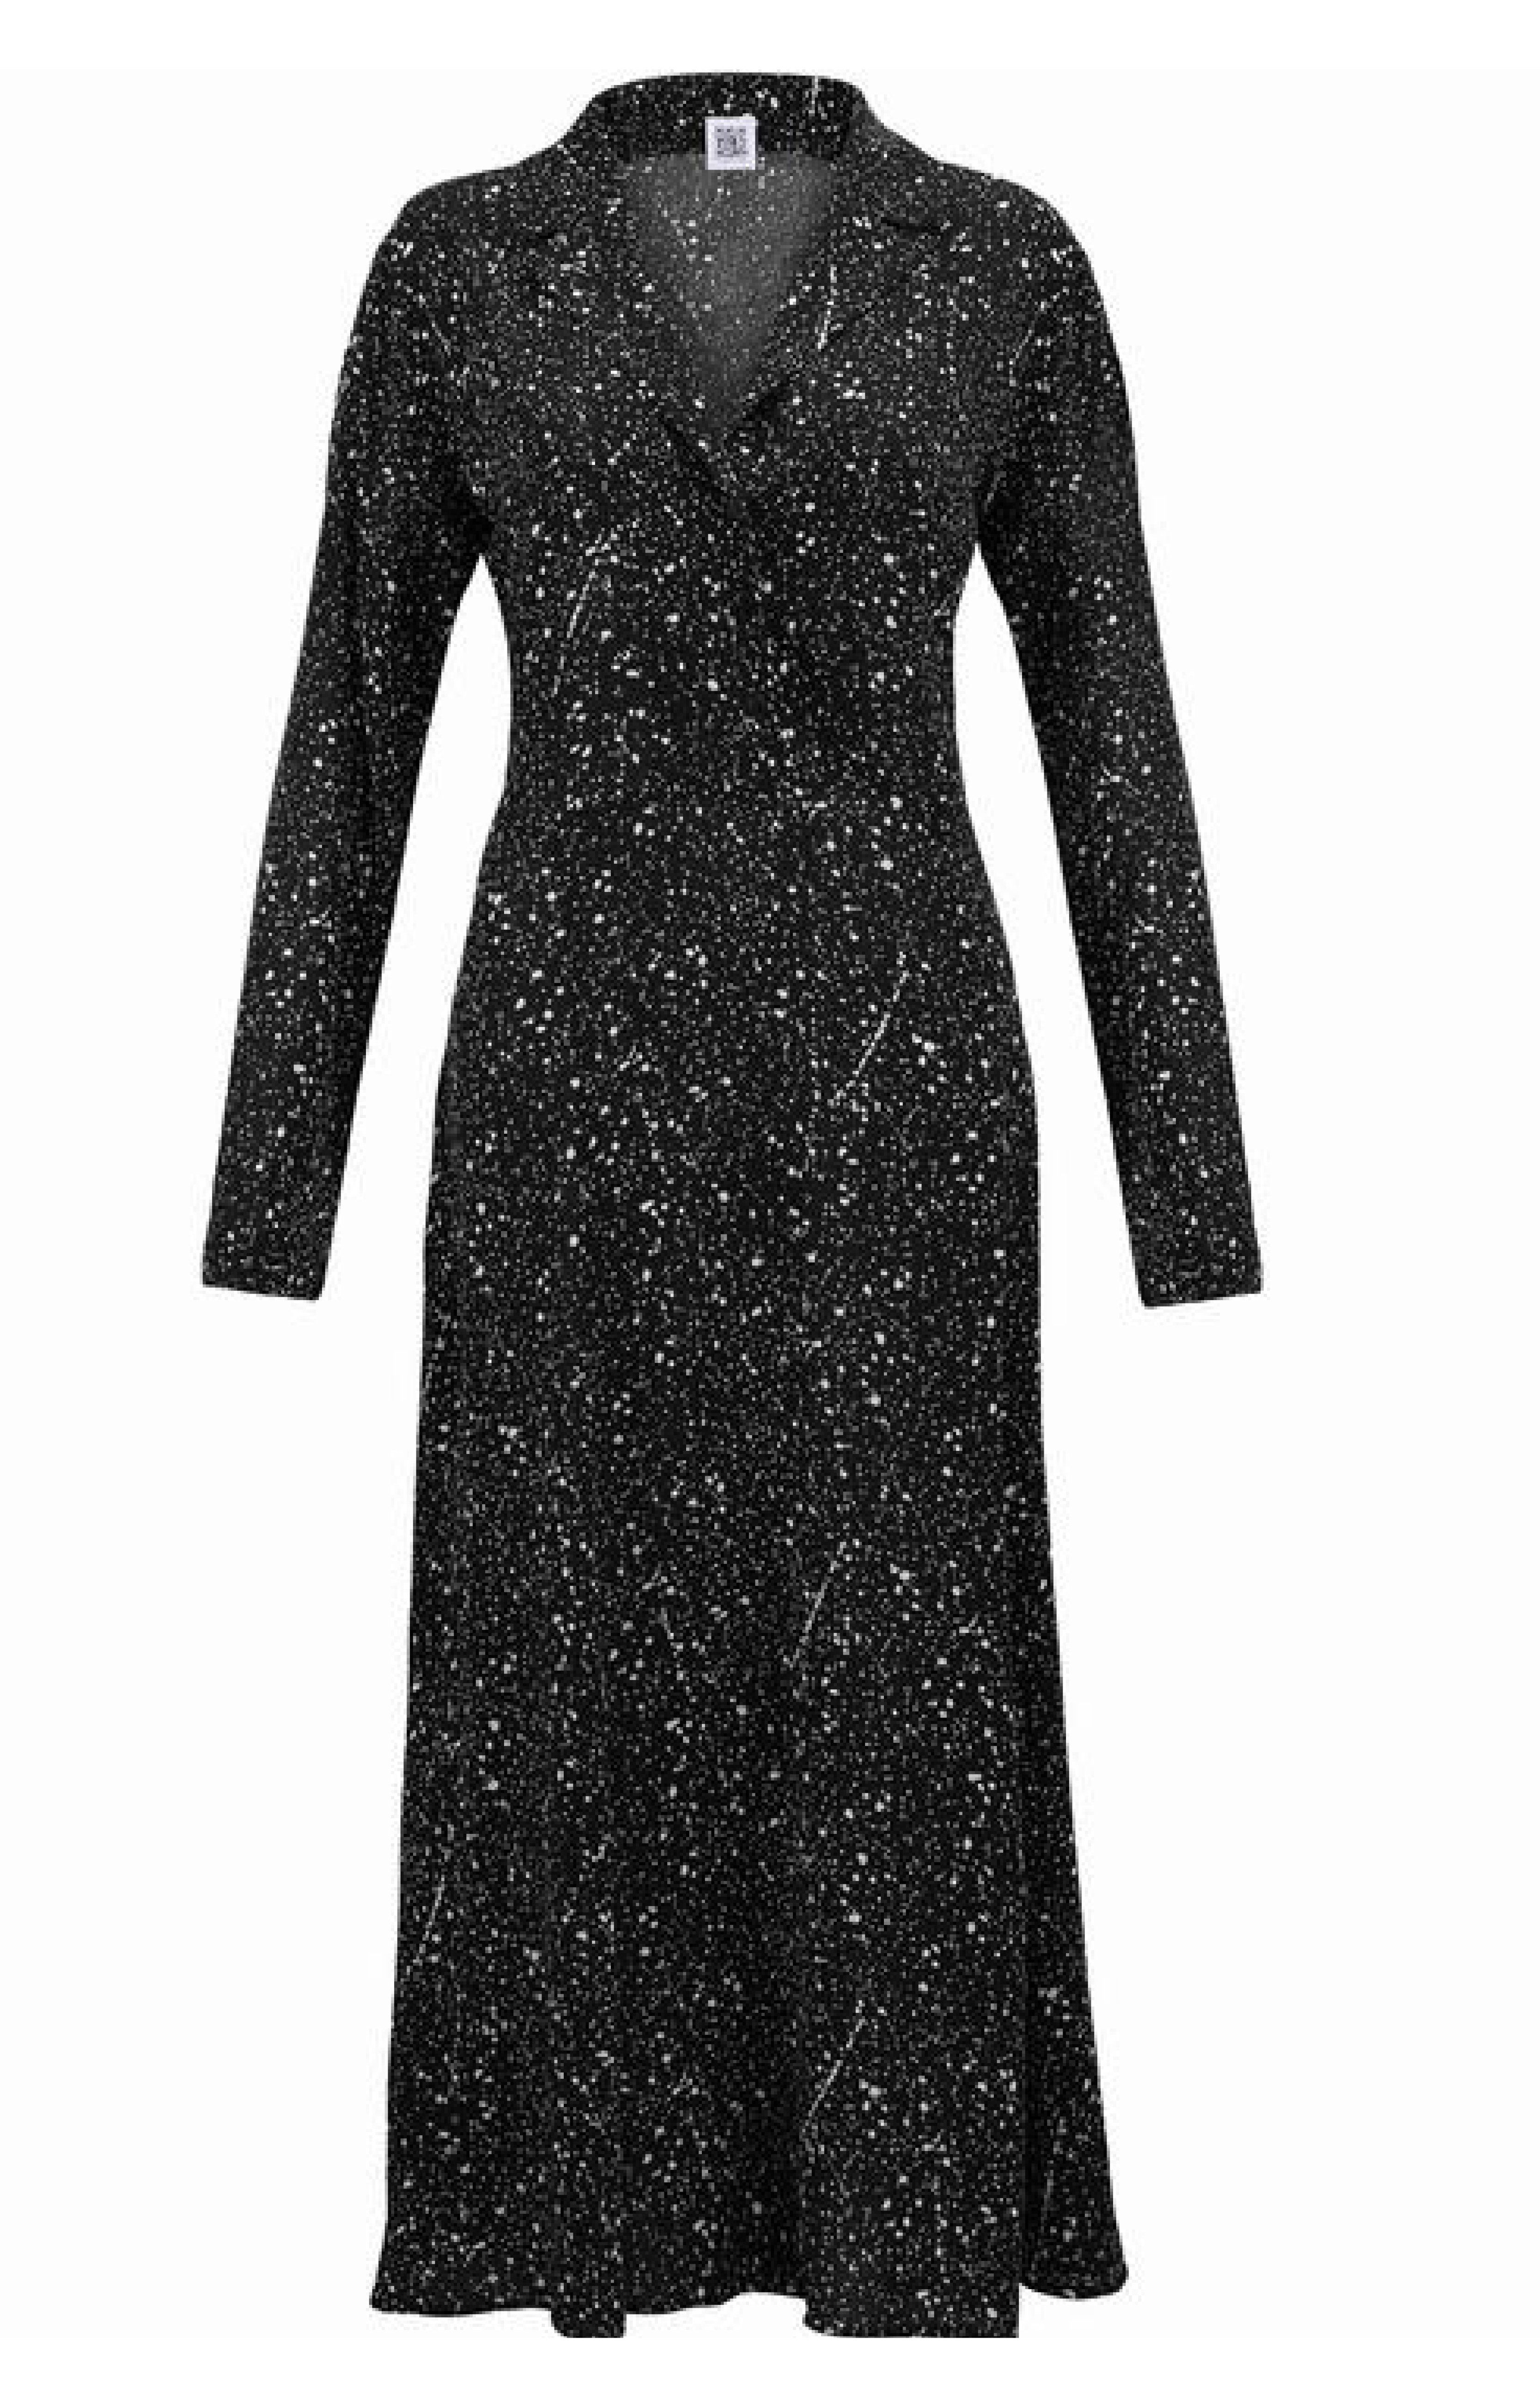 IVYY Black Star Dress Star Print - S